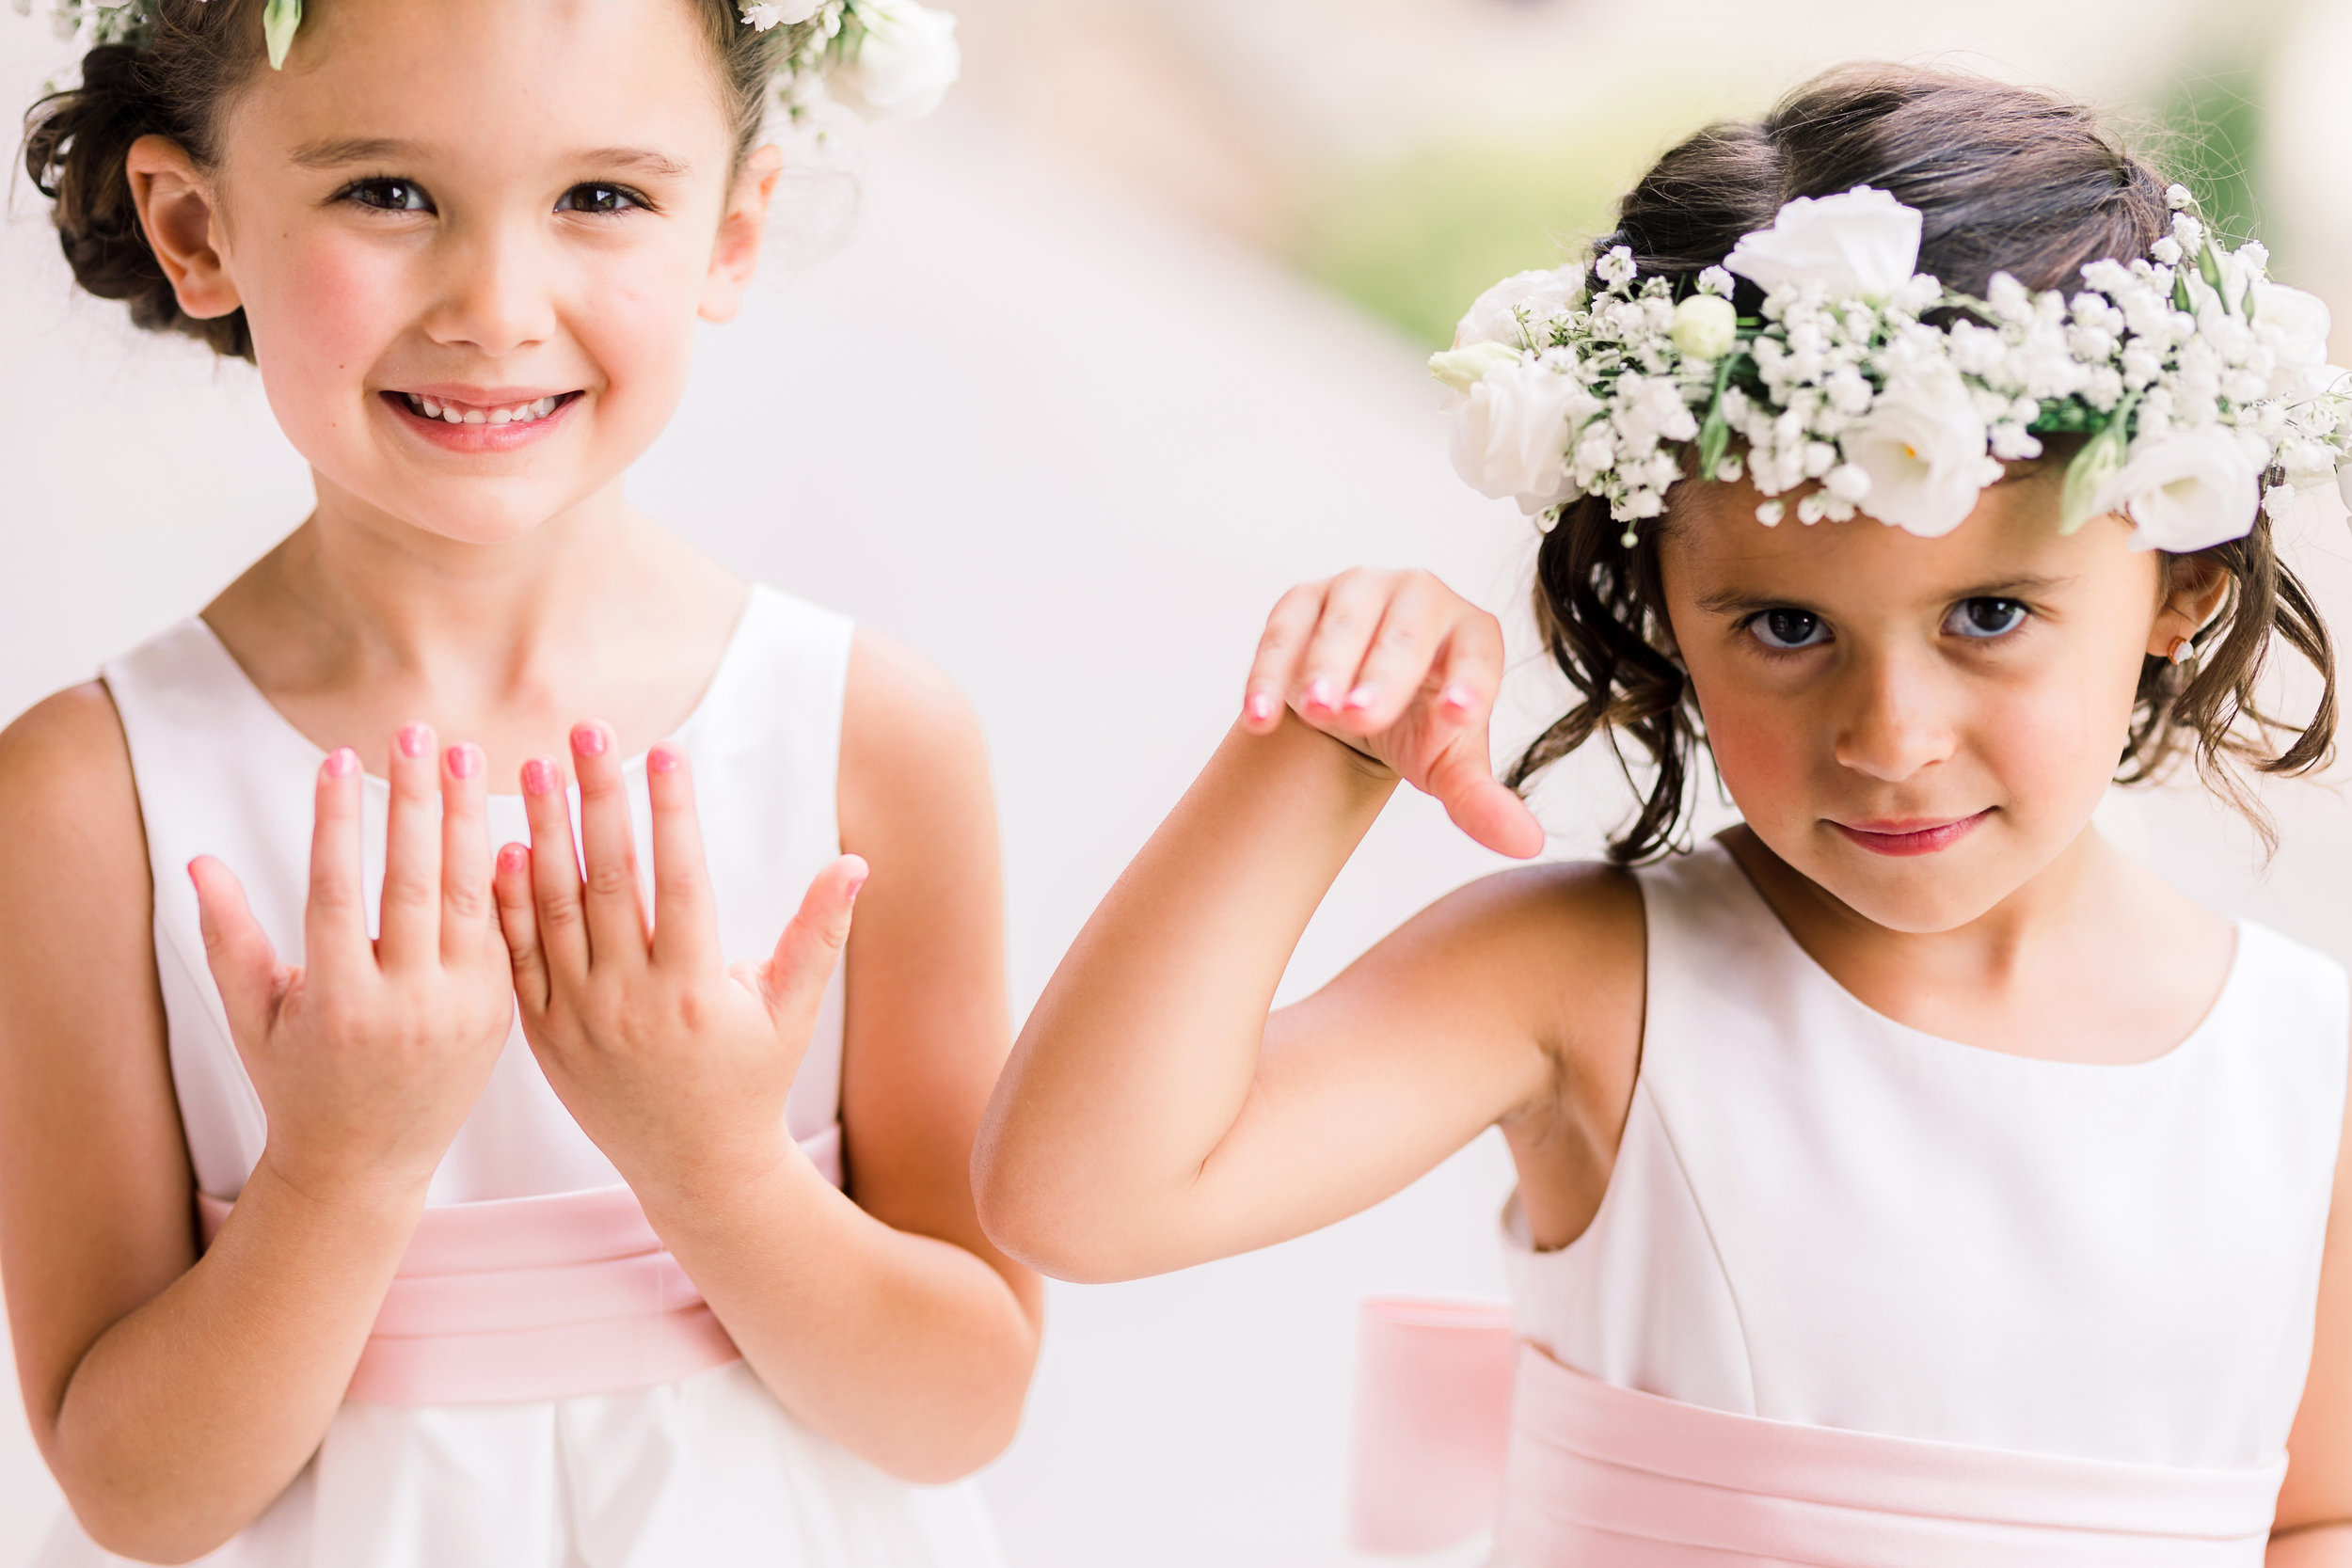 How sweet are these two??? The flower girls and their crowns stole the show! (and of course the cute little ring bearer!) ADORABLE!!!